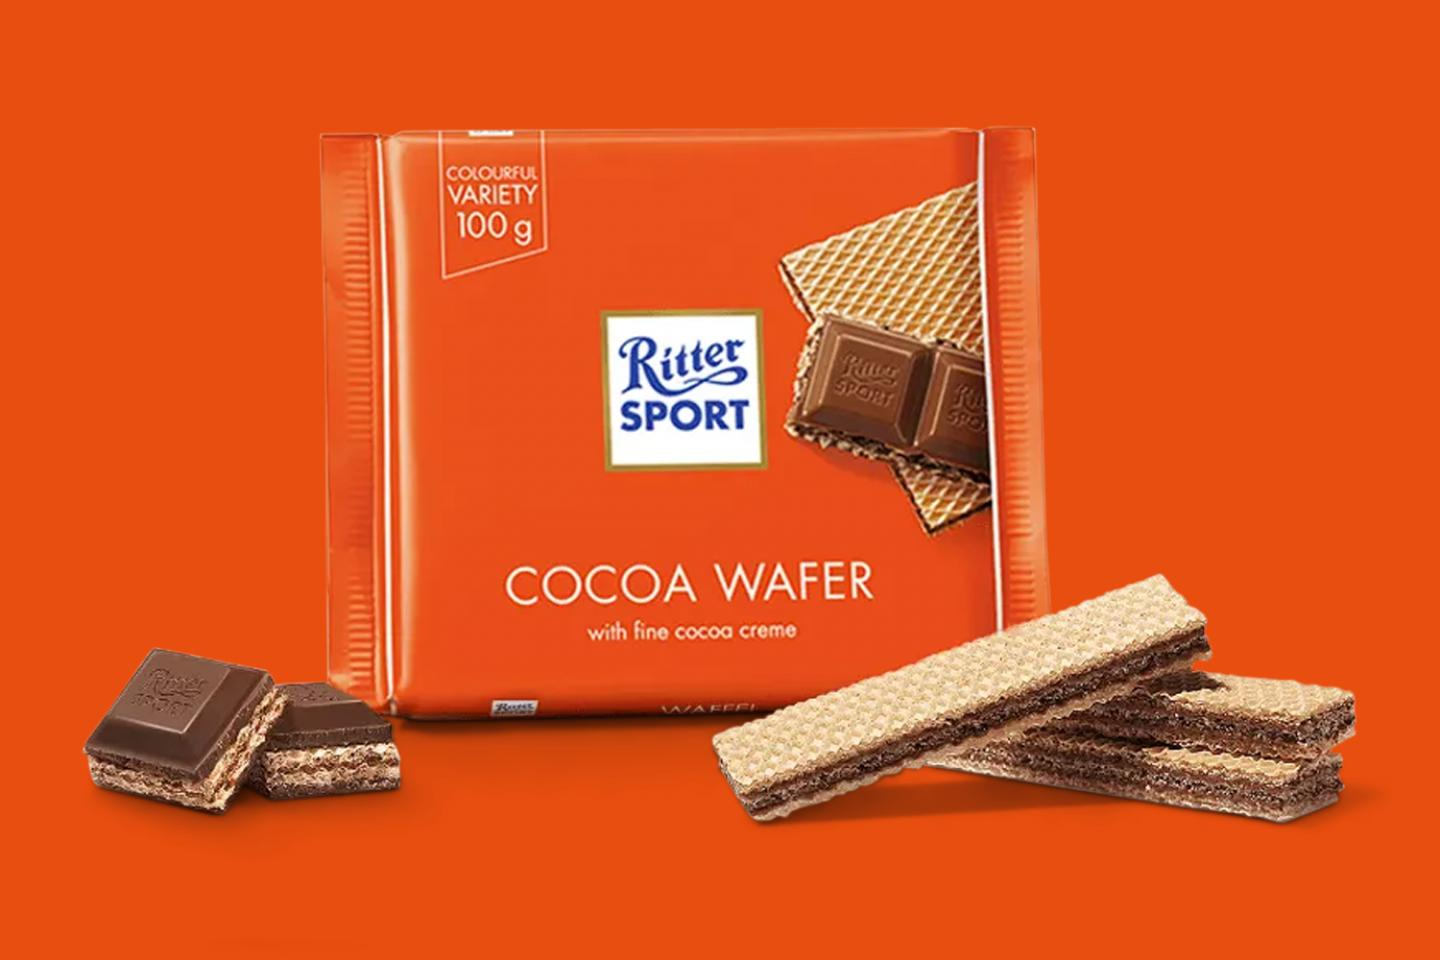 Cocoa Wafer 100g Ritter Sport